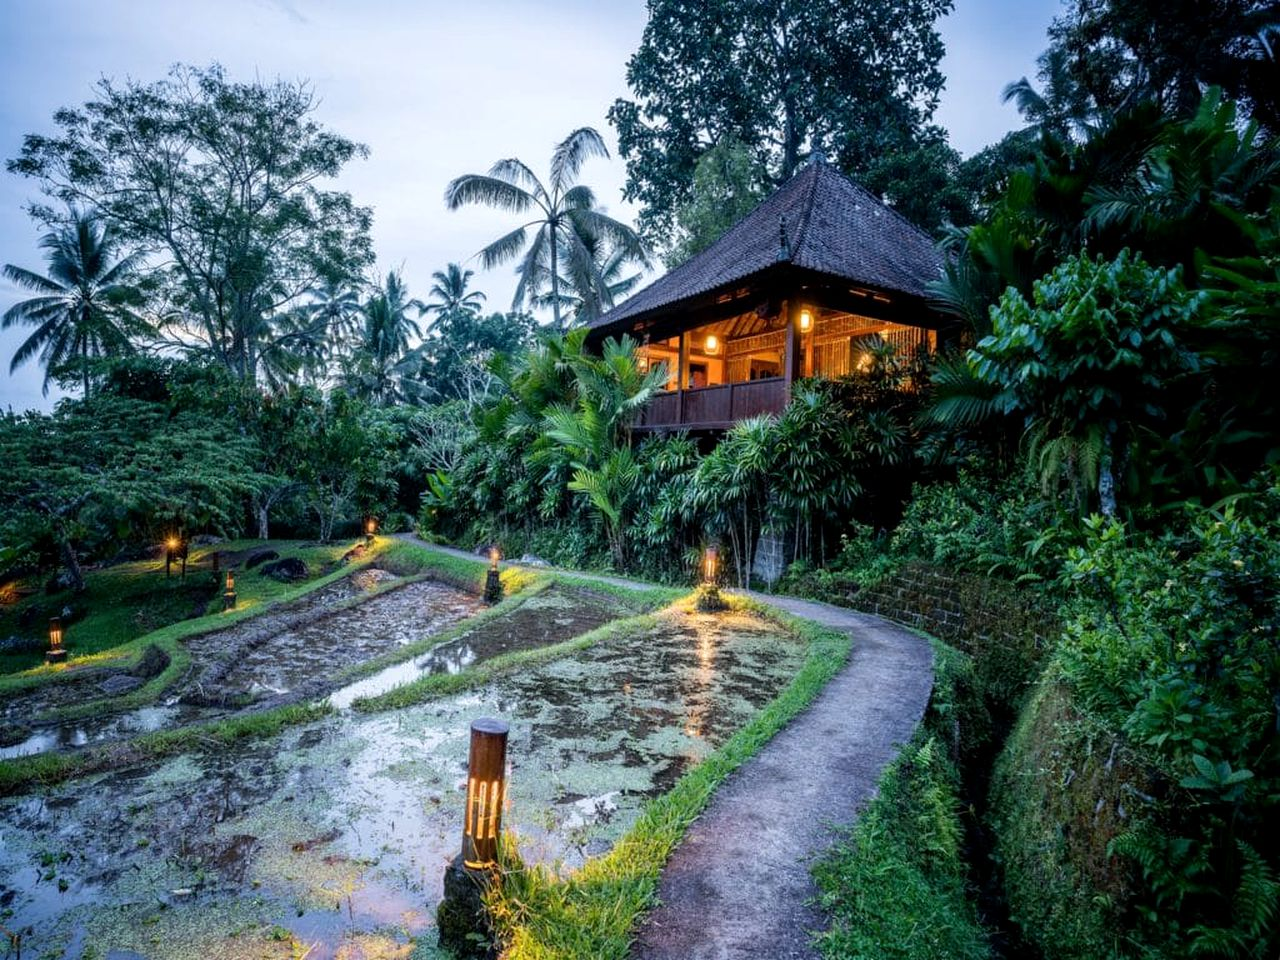 Jungle bungalow rental in Bali, Indonesia.